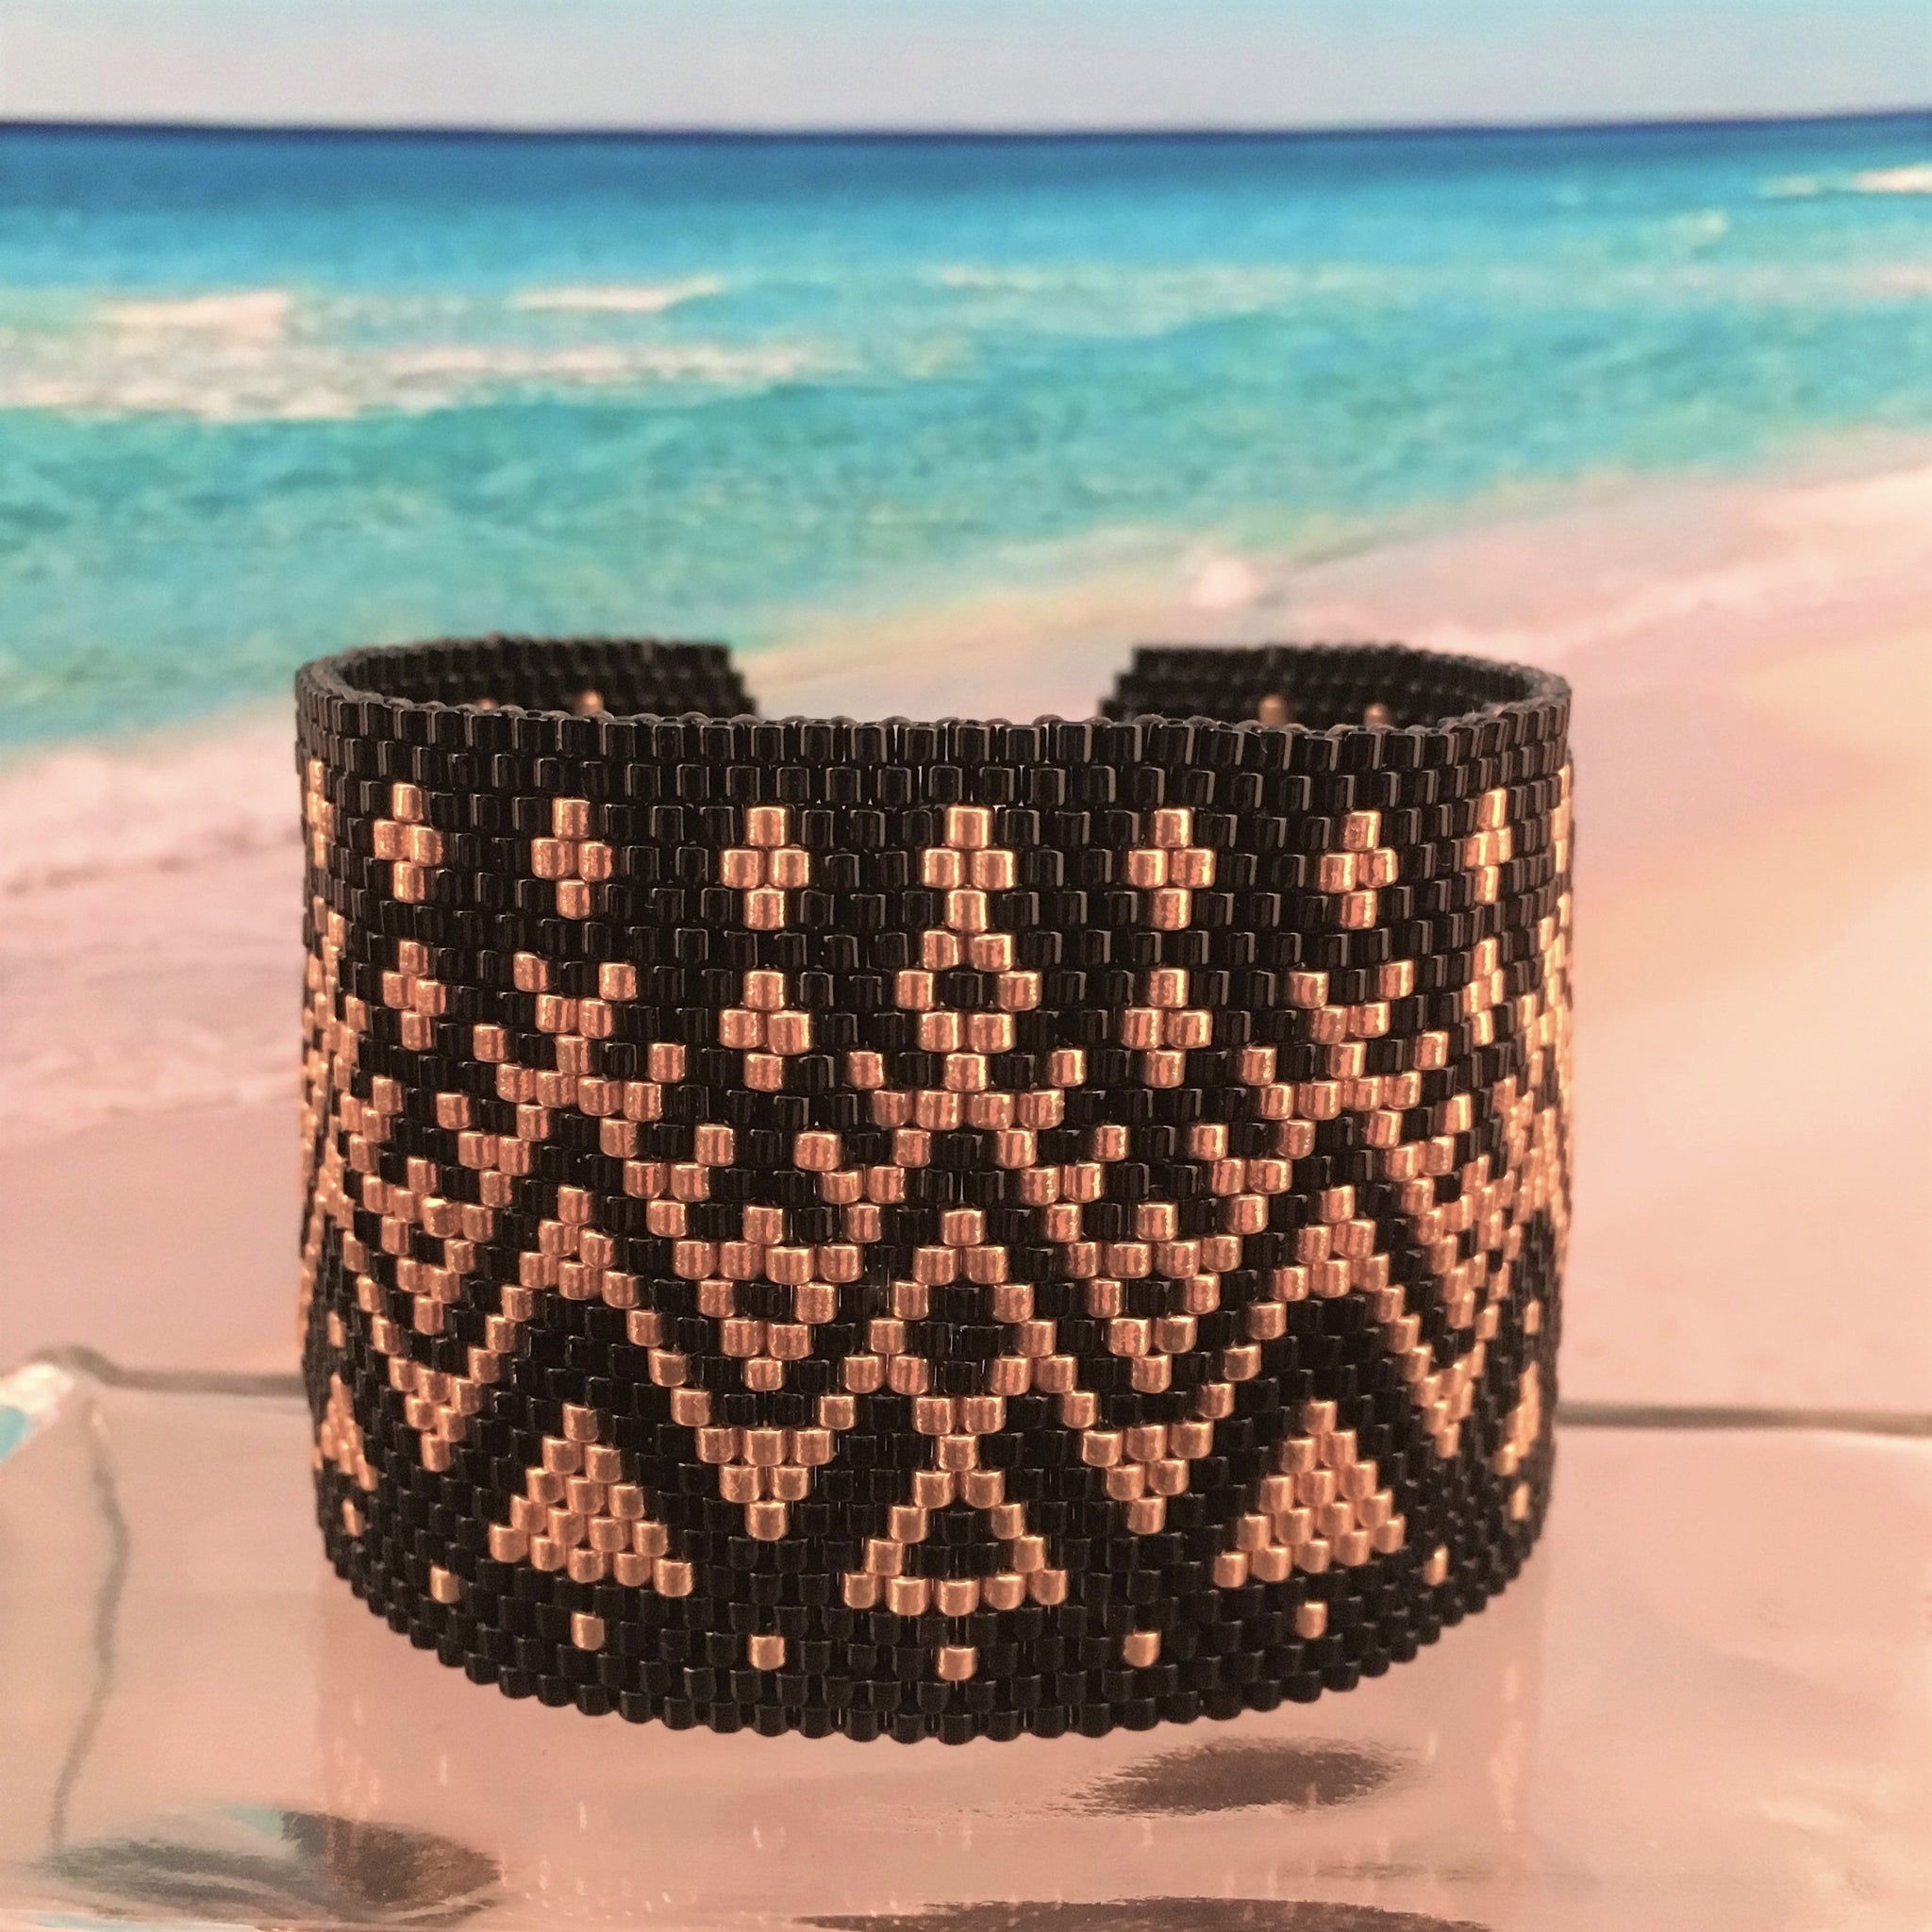 Peyote Black and Gold beaded bracelet custom Ralph Lauren style Native American inspired wide boho original design statement SAINTS team Vanderbilt NCAA Purdue  Beaded By The Beach